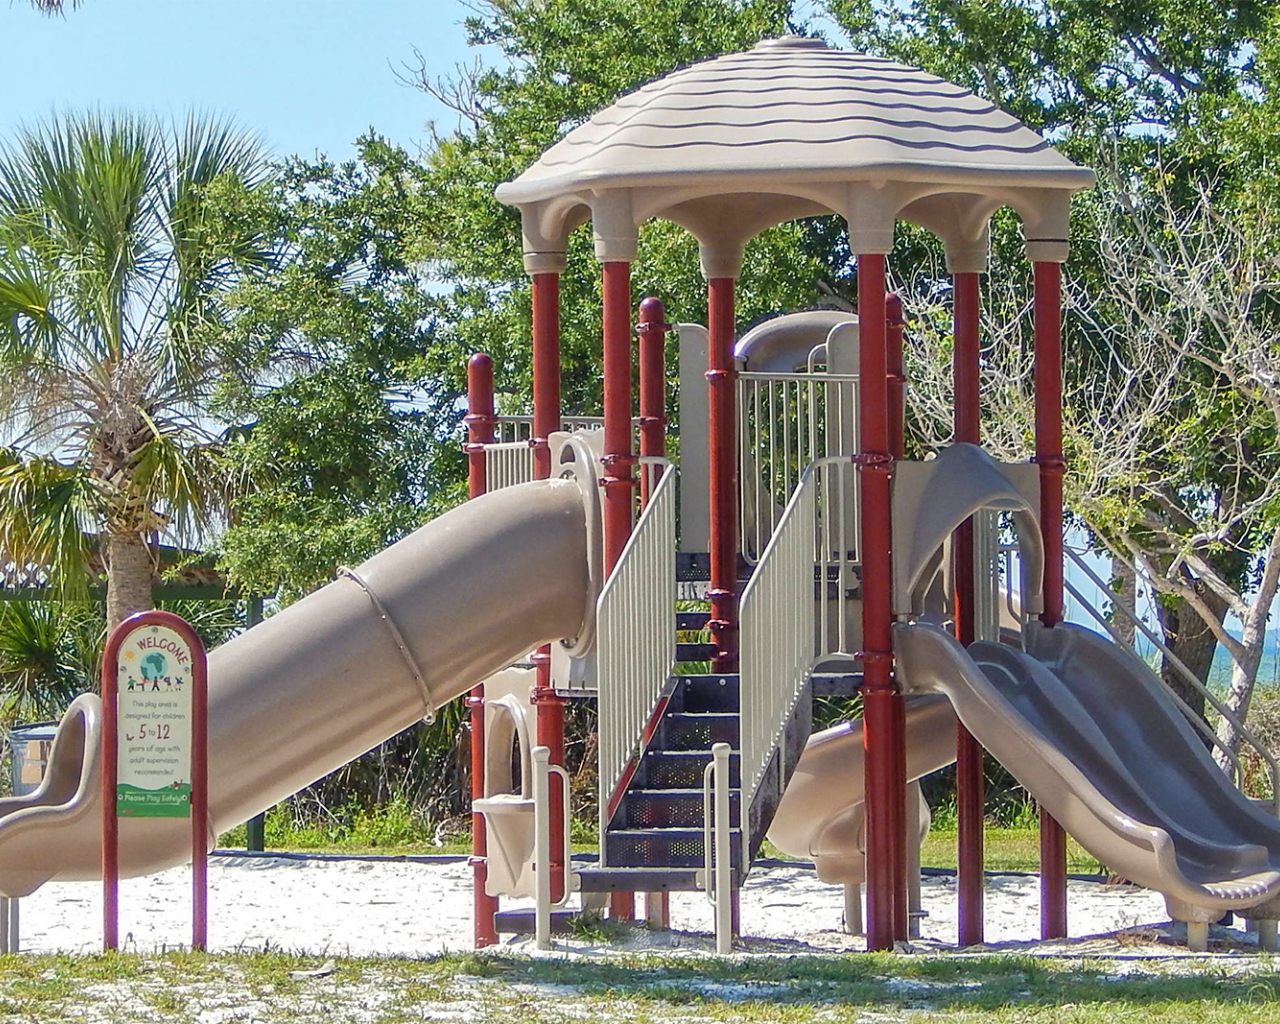 Free Download Playground With Tampa Bay In Background At Eg